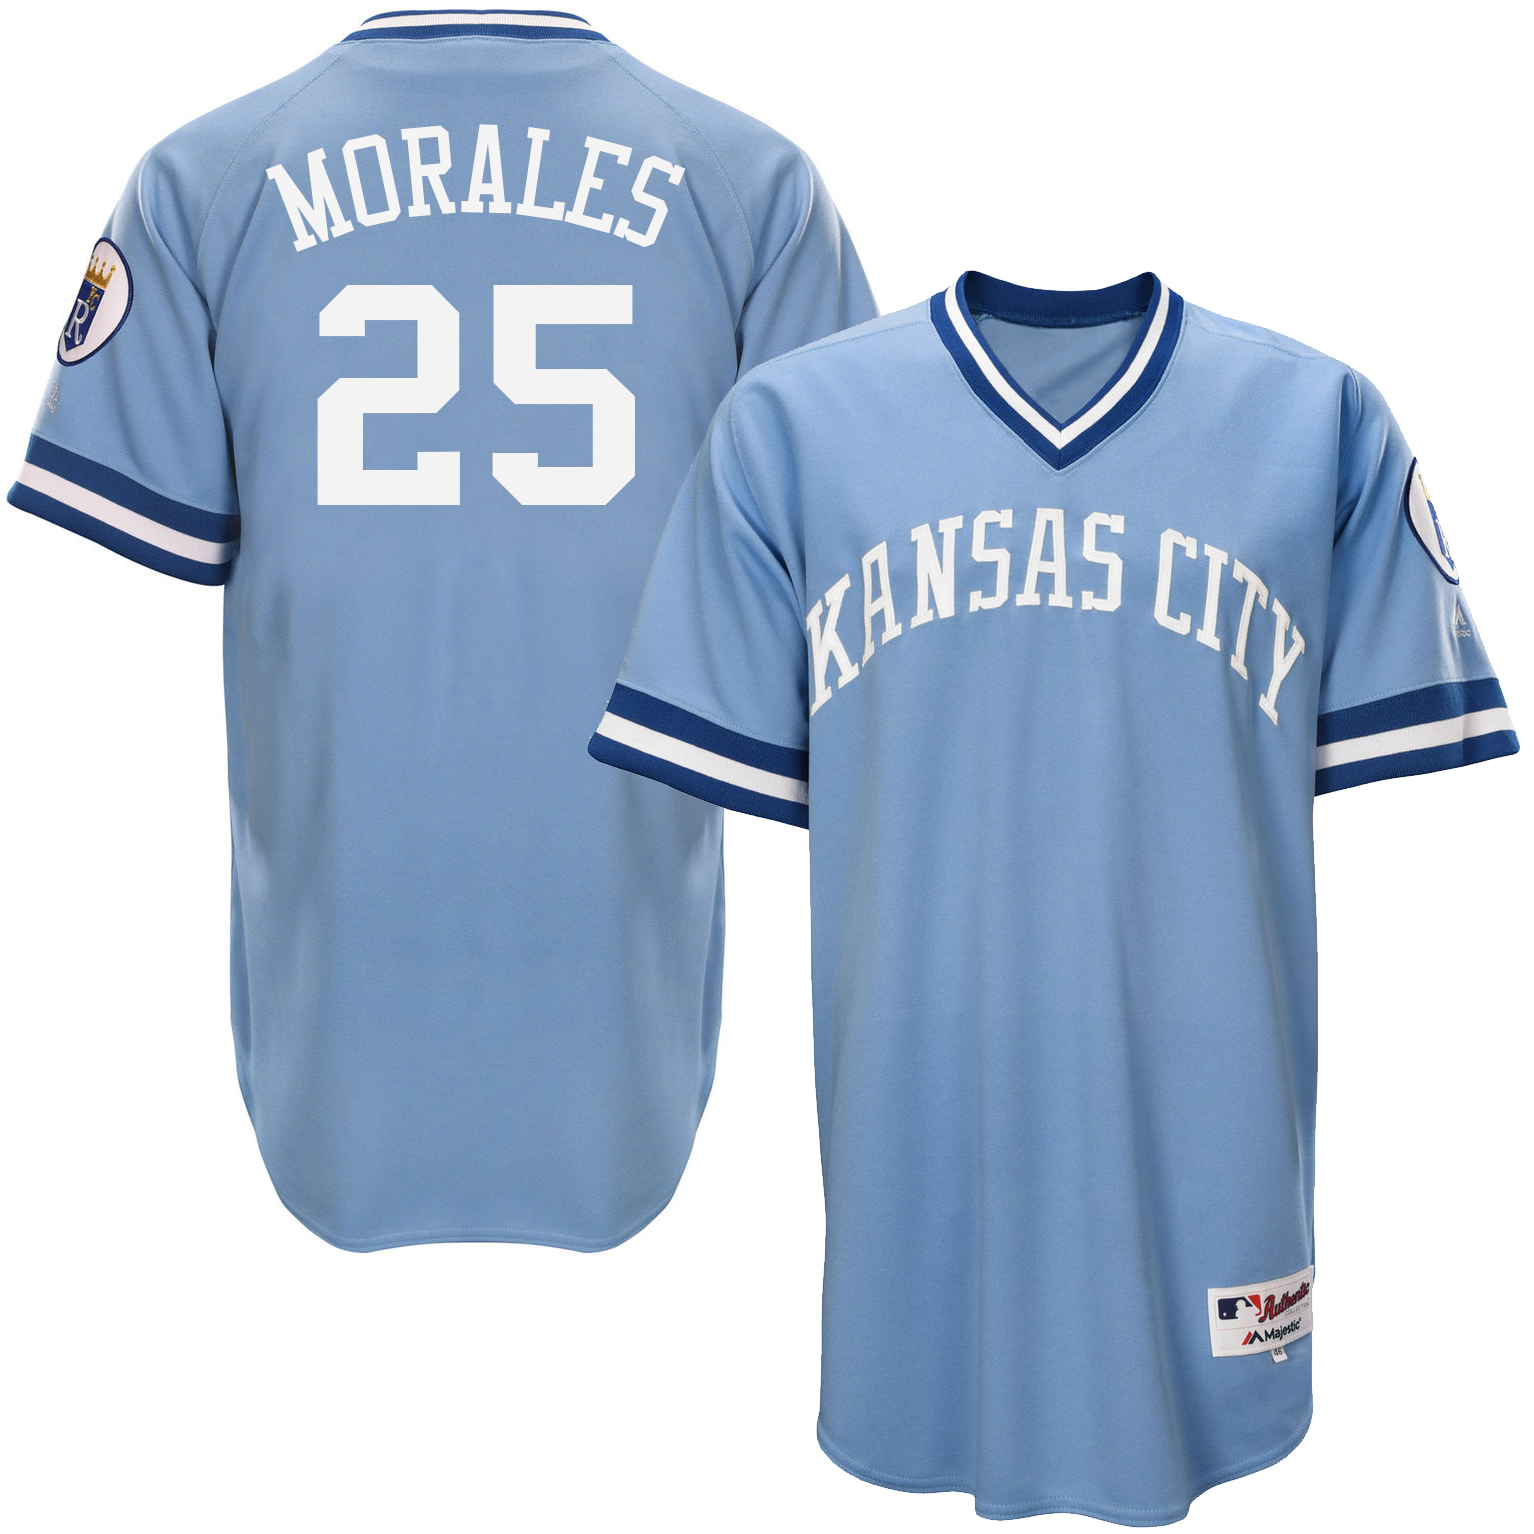 Royals 25 Kendrys Morales Light Blue Throwback Jersey